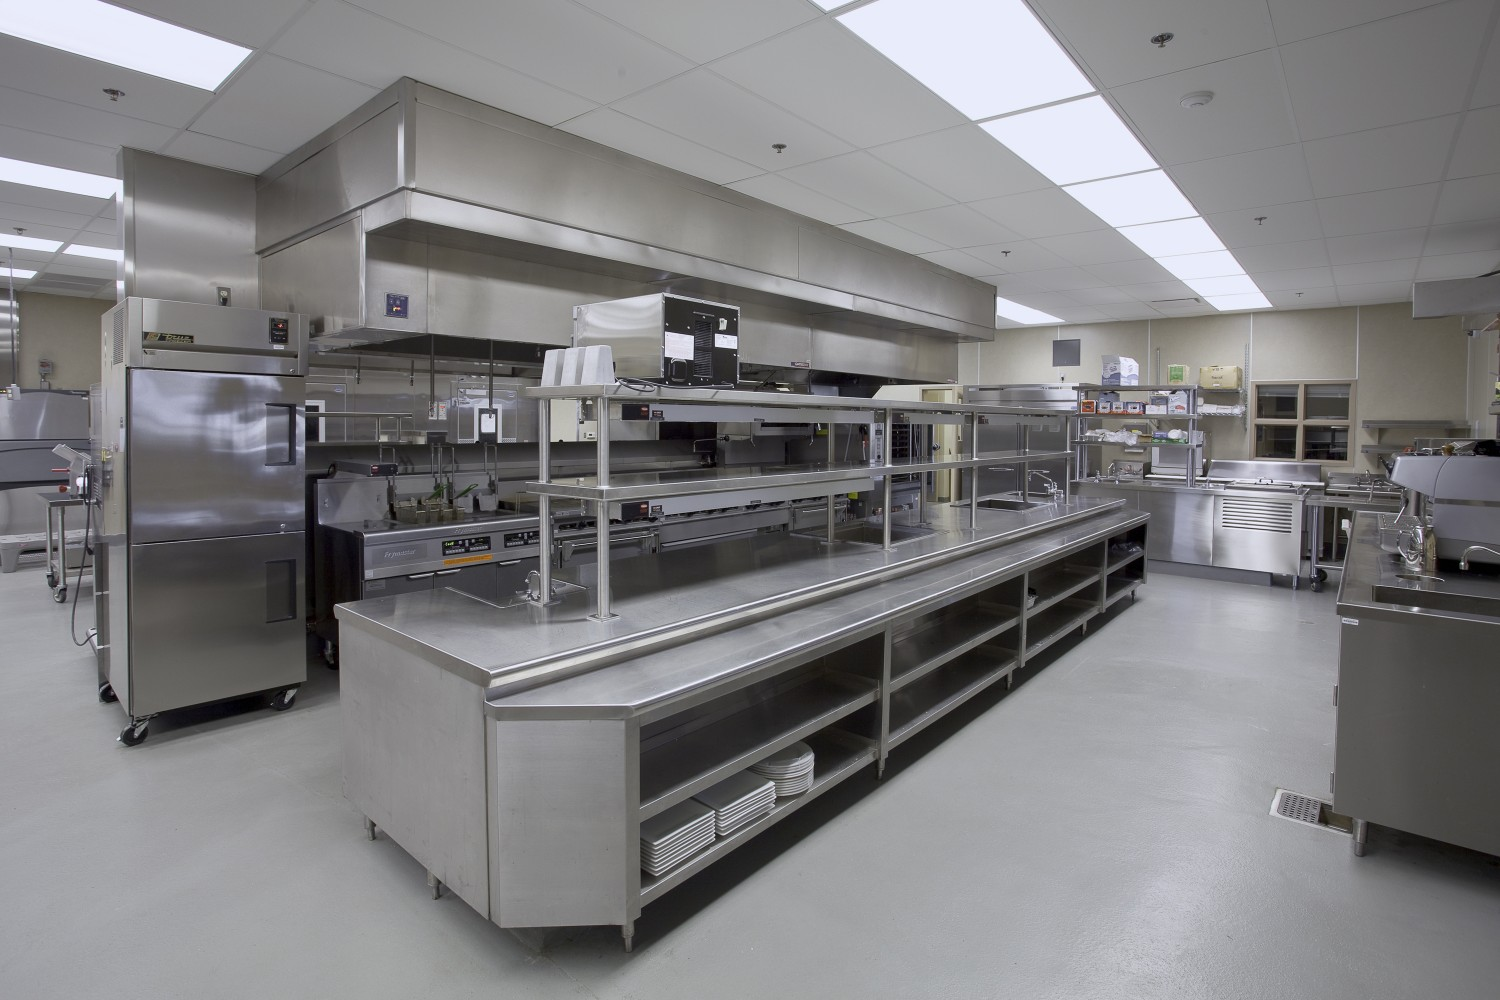 Lovely Commercial Kitchens For Rent In Toronto Pictures Gallery